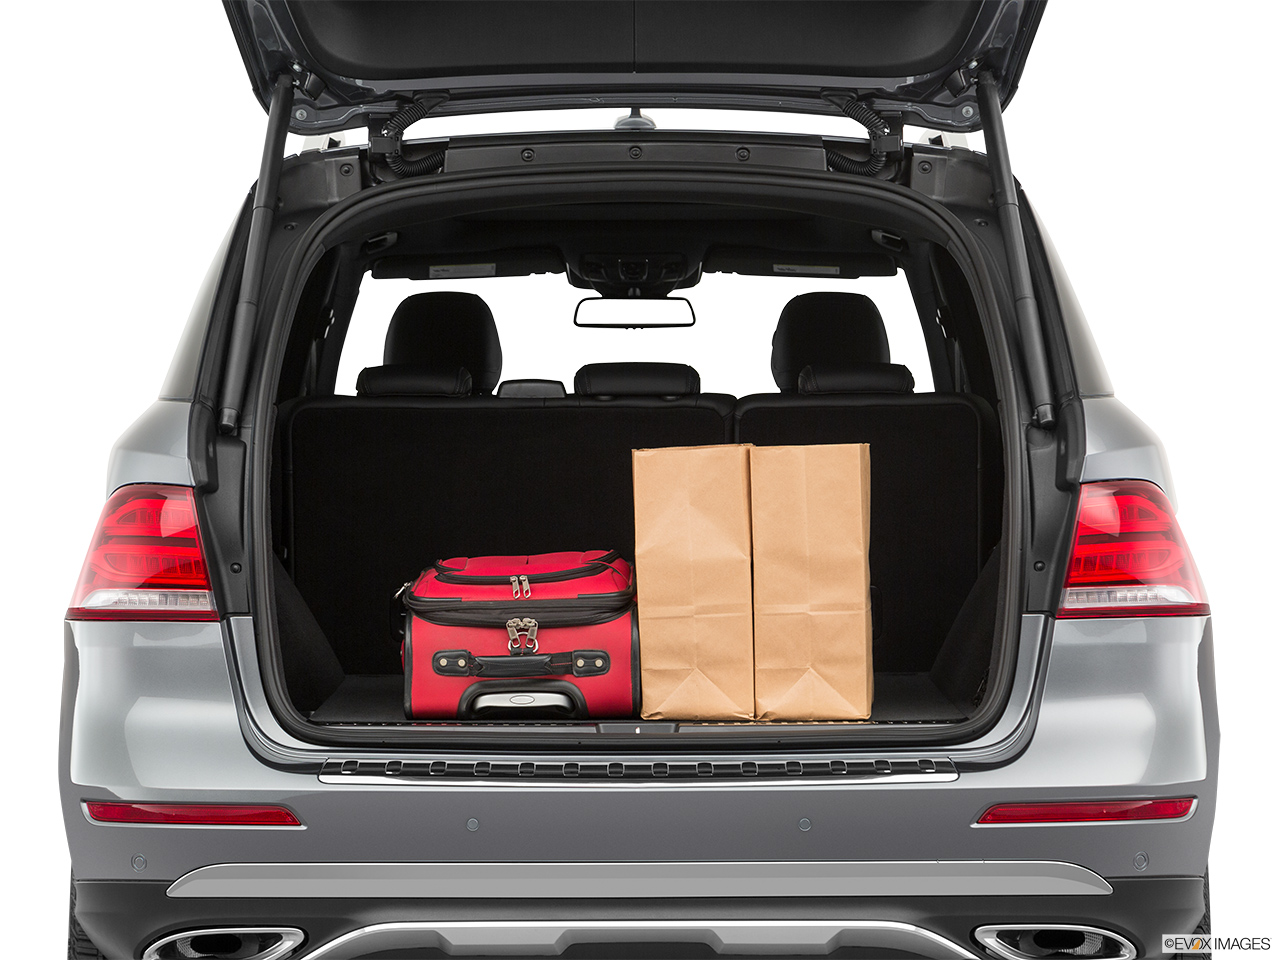 2019 Mercedes-Benz GLE Cargo Space